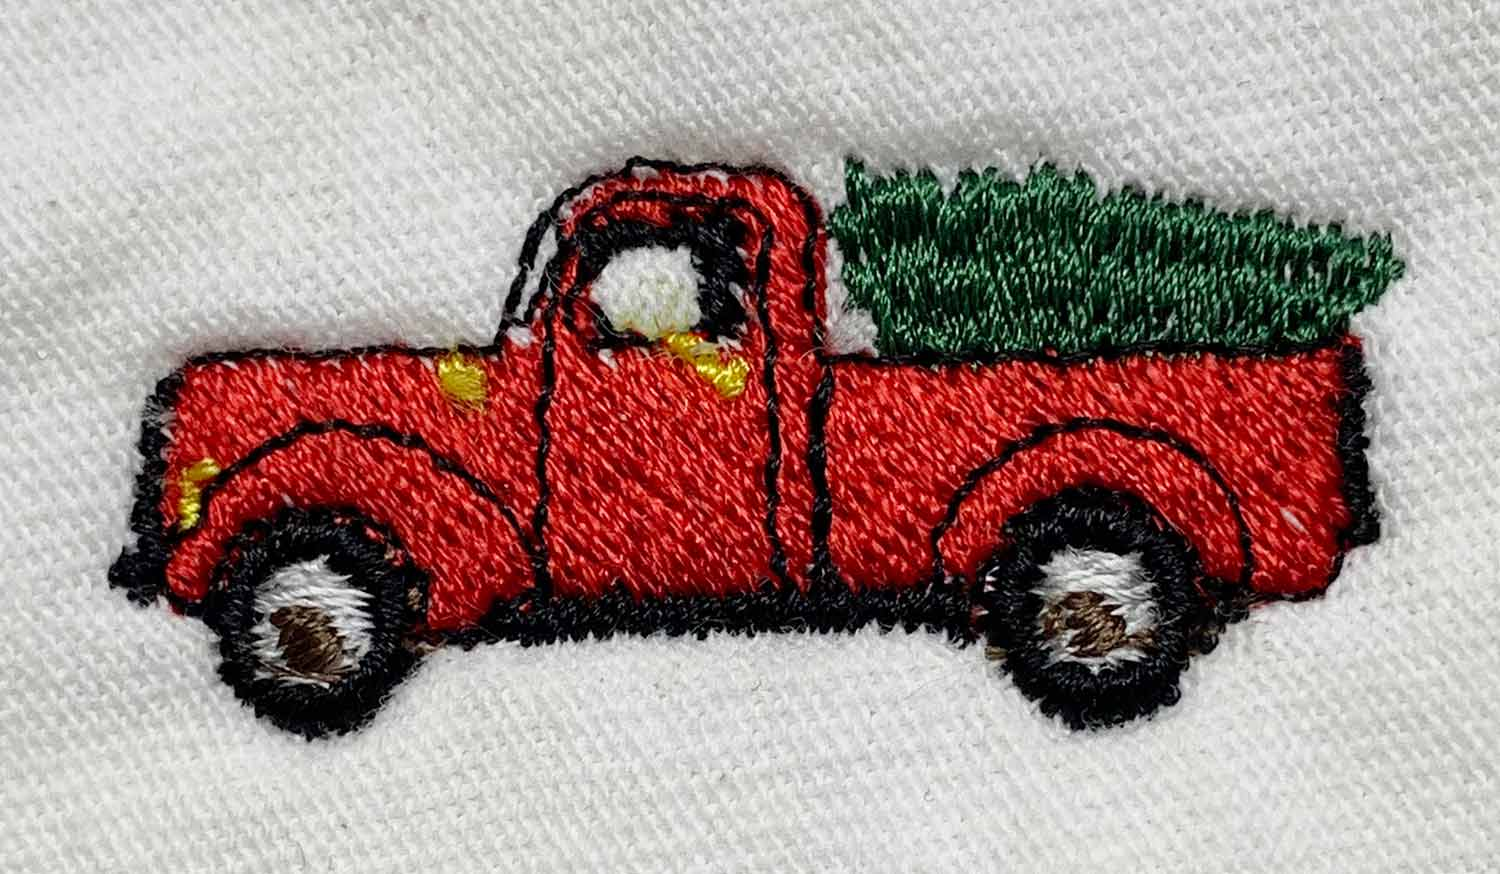 KYC_OLD-TRUCK-WITH-CHRISTMAS-TREE-IN-BACK_web.jpg